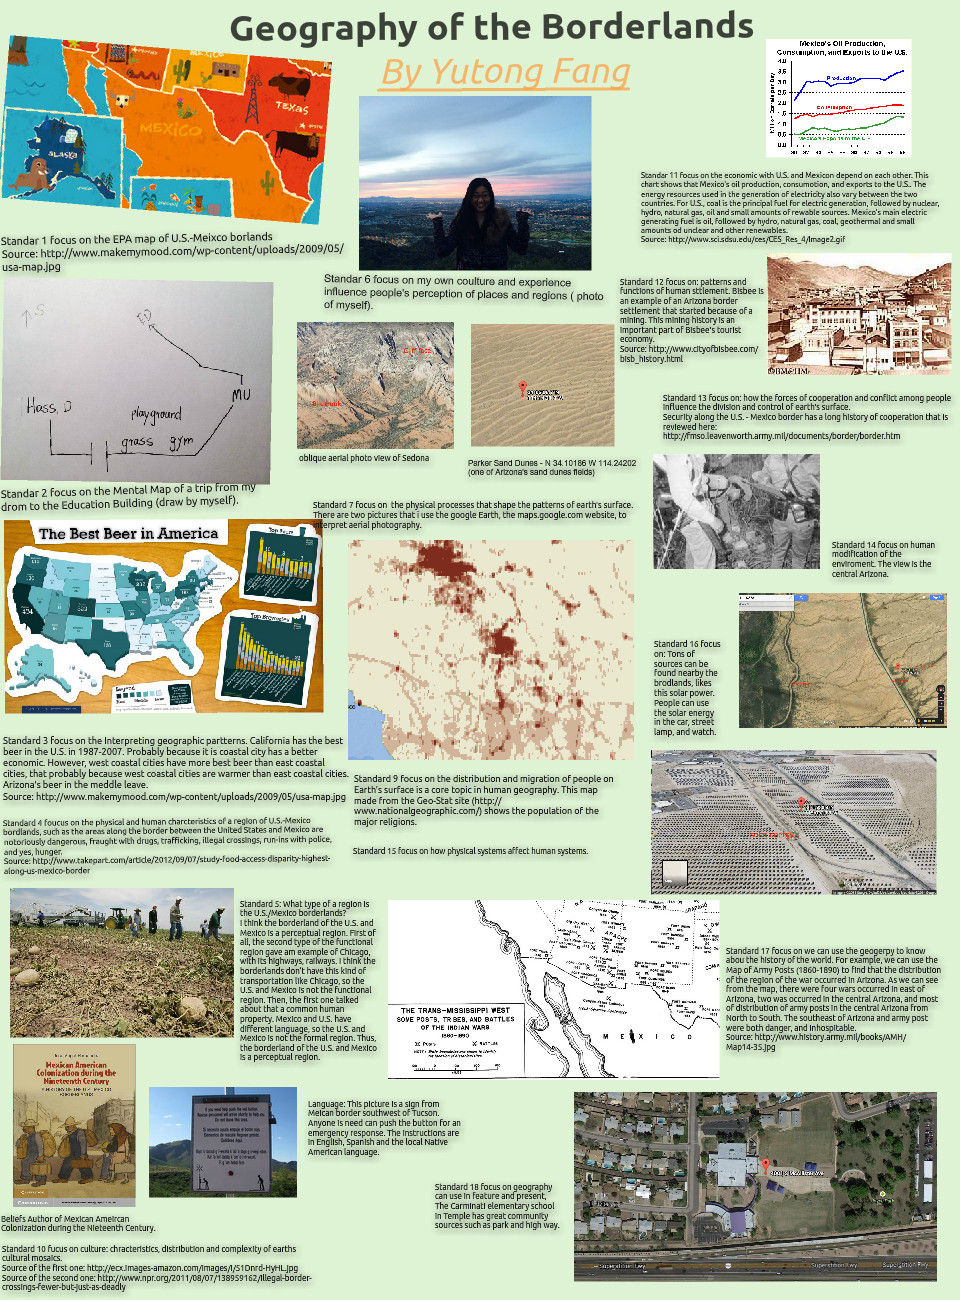 Geography of the Borderlands